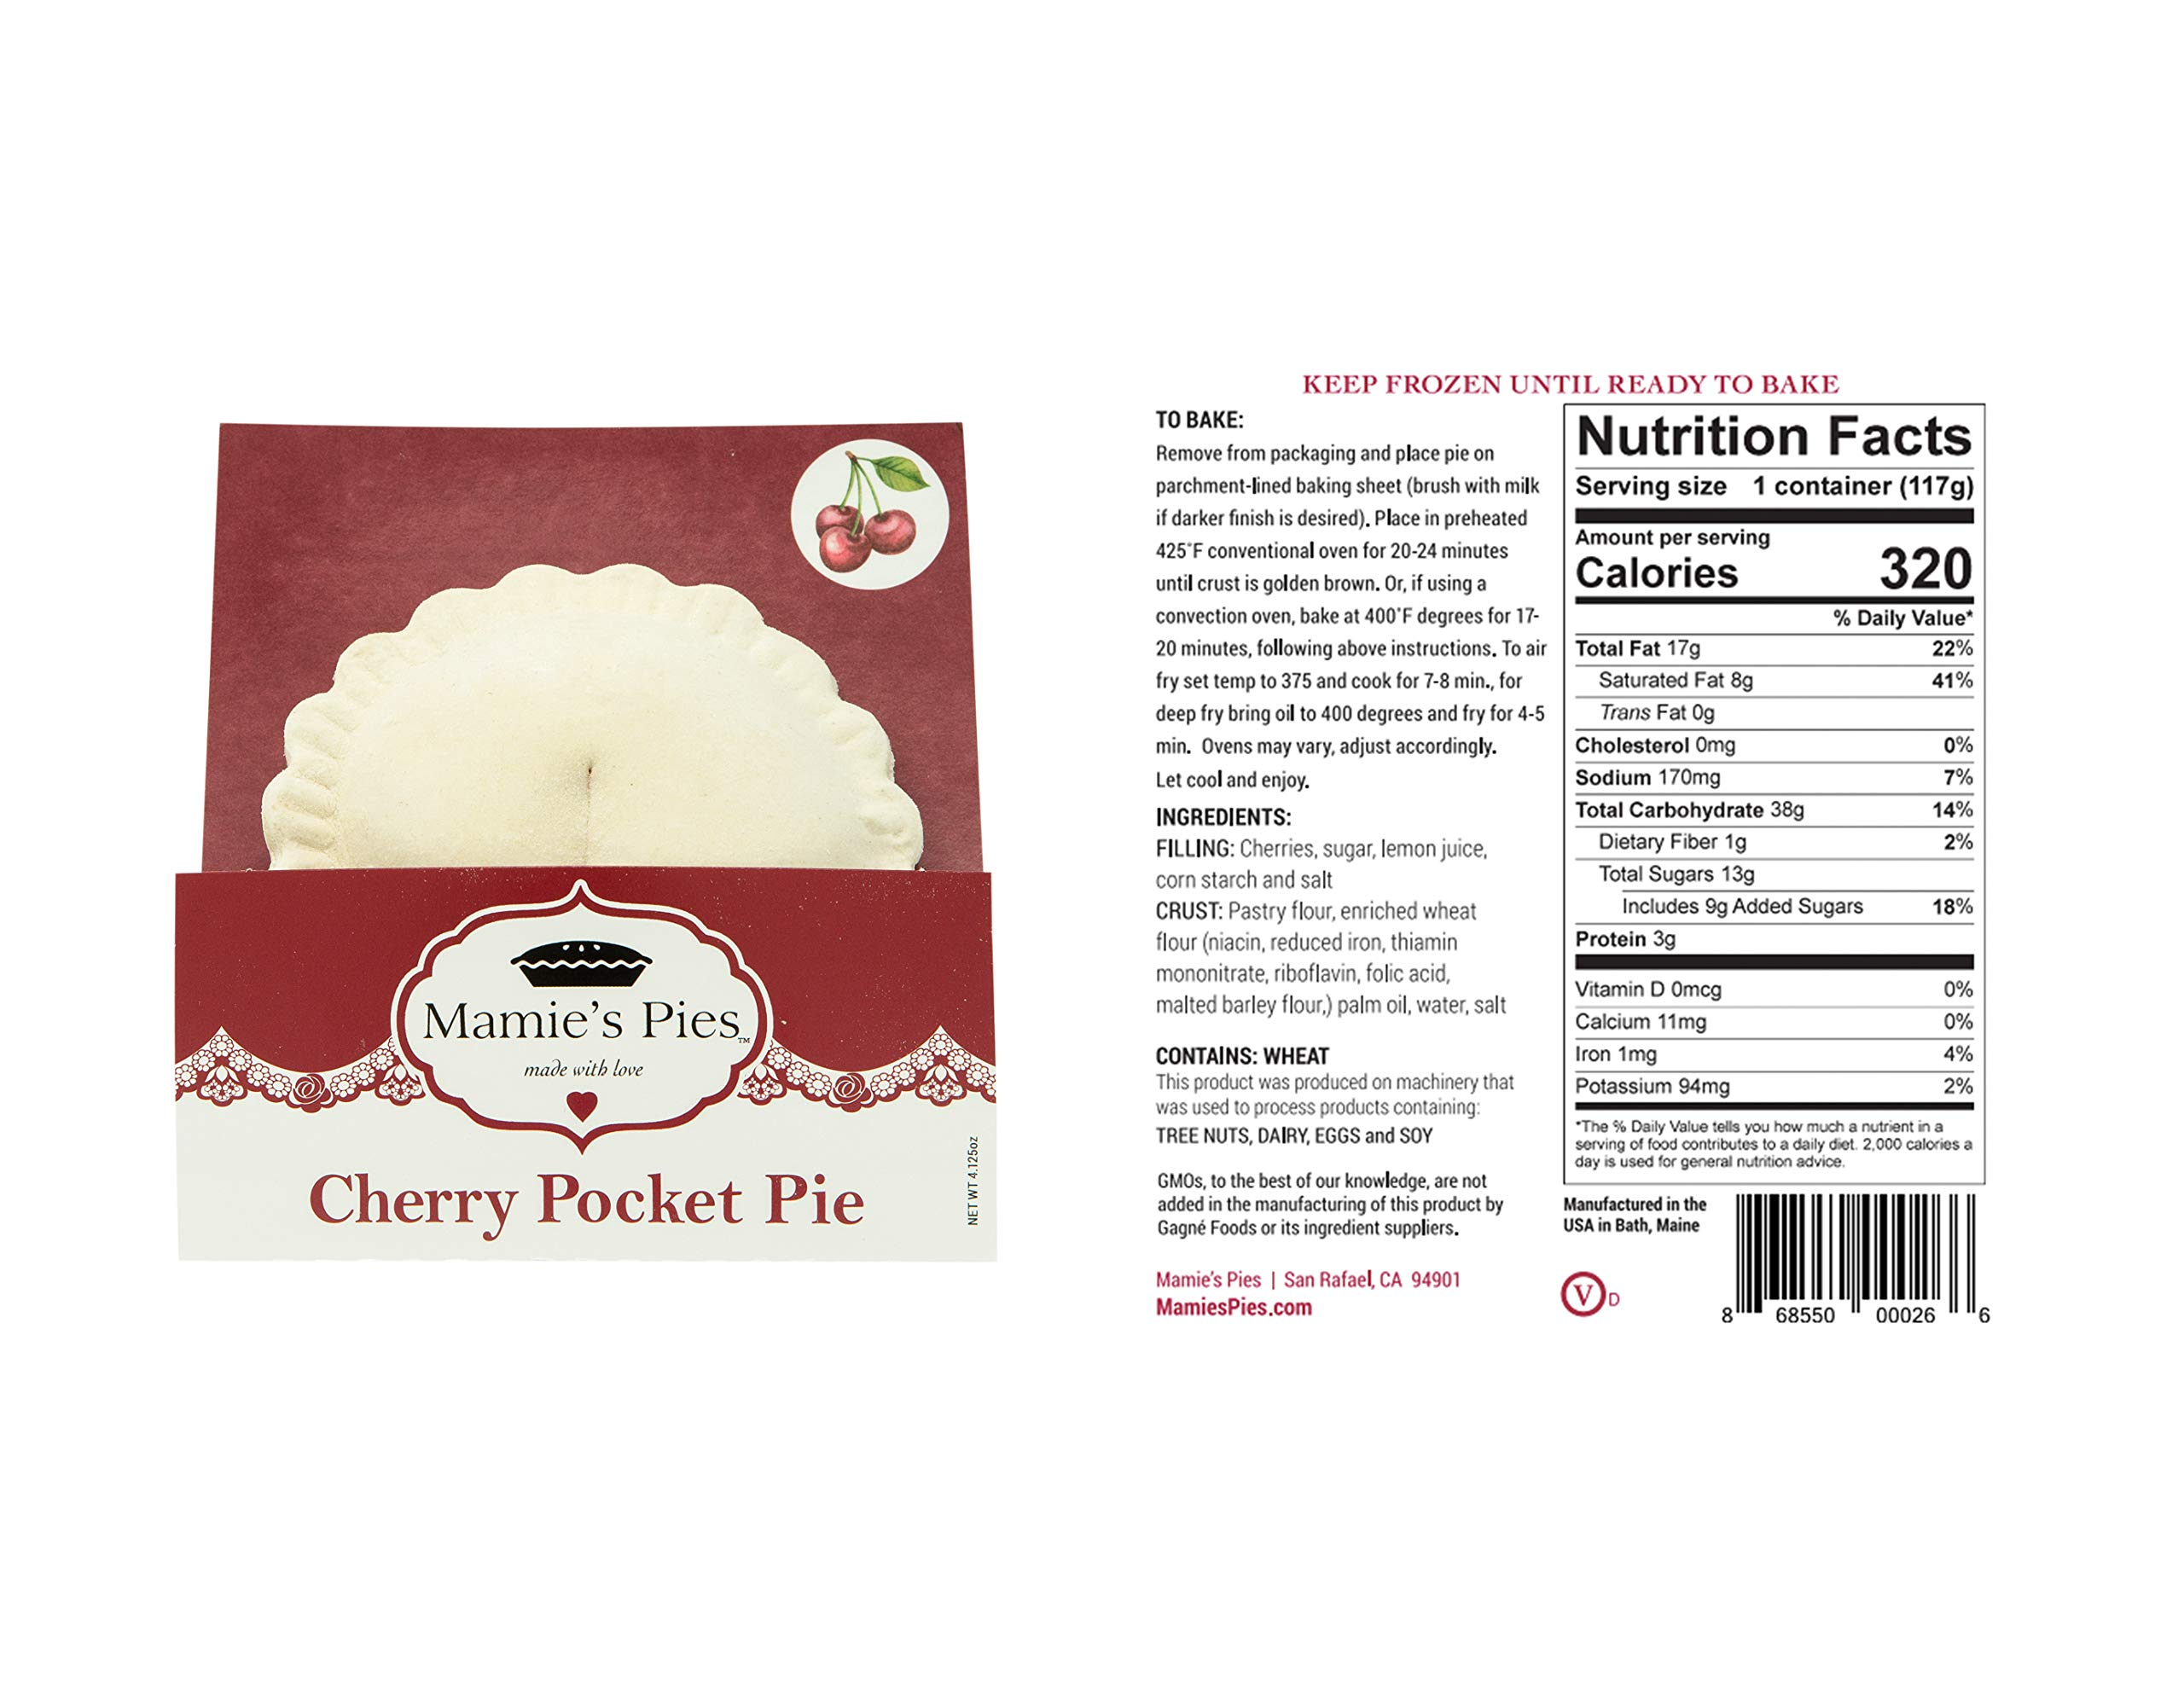 Mamie's 12 Pack Melt-in-Your-Mouth Single Serving Cherry Pies, Individually Packaged 4.5oz Pocket Pies, Preservative Free, Shipped Frozen and Ready to Bake, Made in USA. by Mamie's Pies (Image #5)